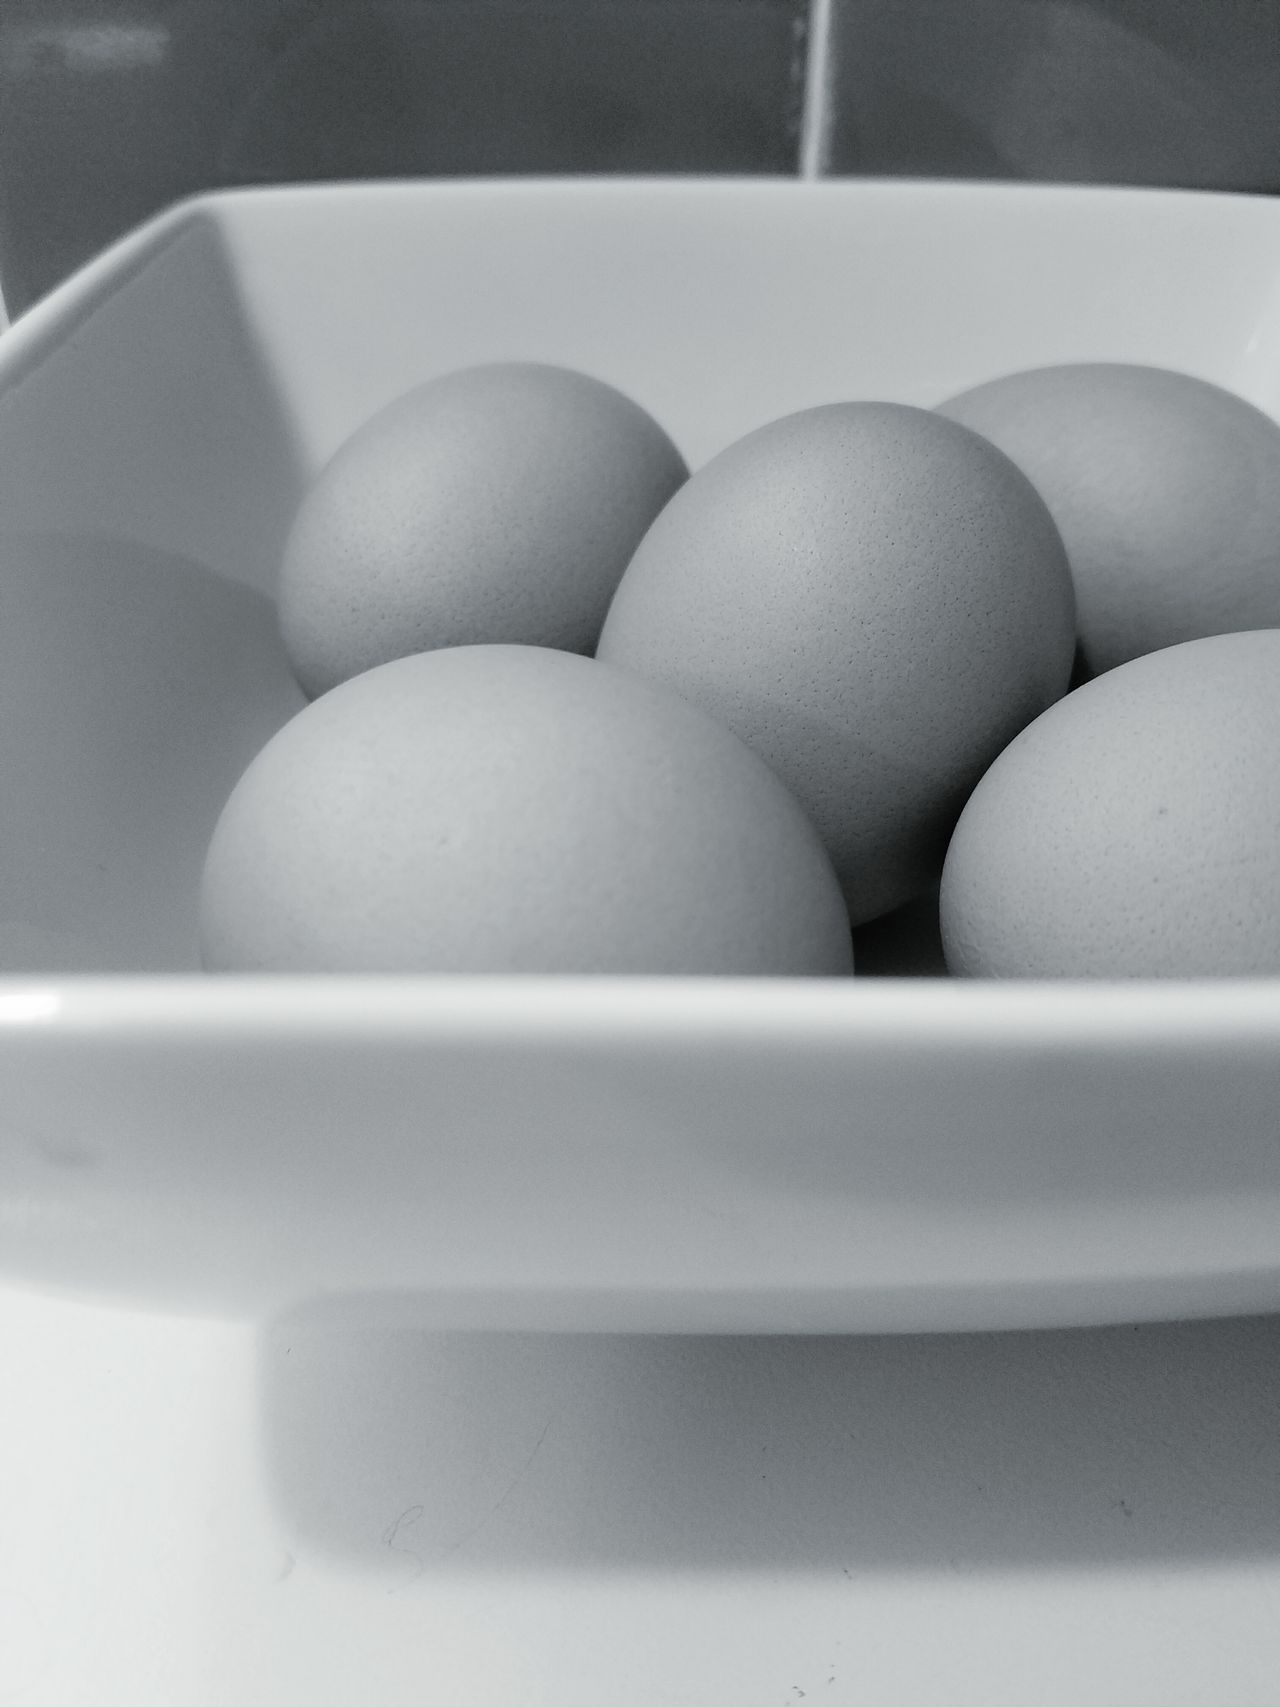 B&W Eggs MUR B&W The Song Of Light Organic Food Extreme Close-up Medium Group Of Objects MUR KITCHEN Monochrome Photography